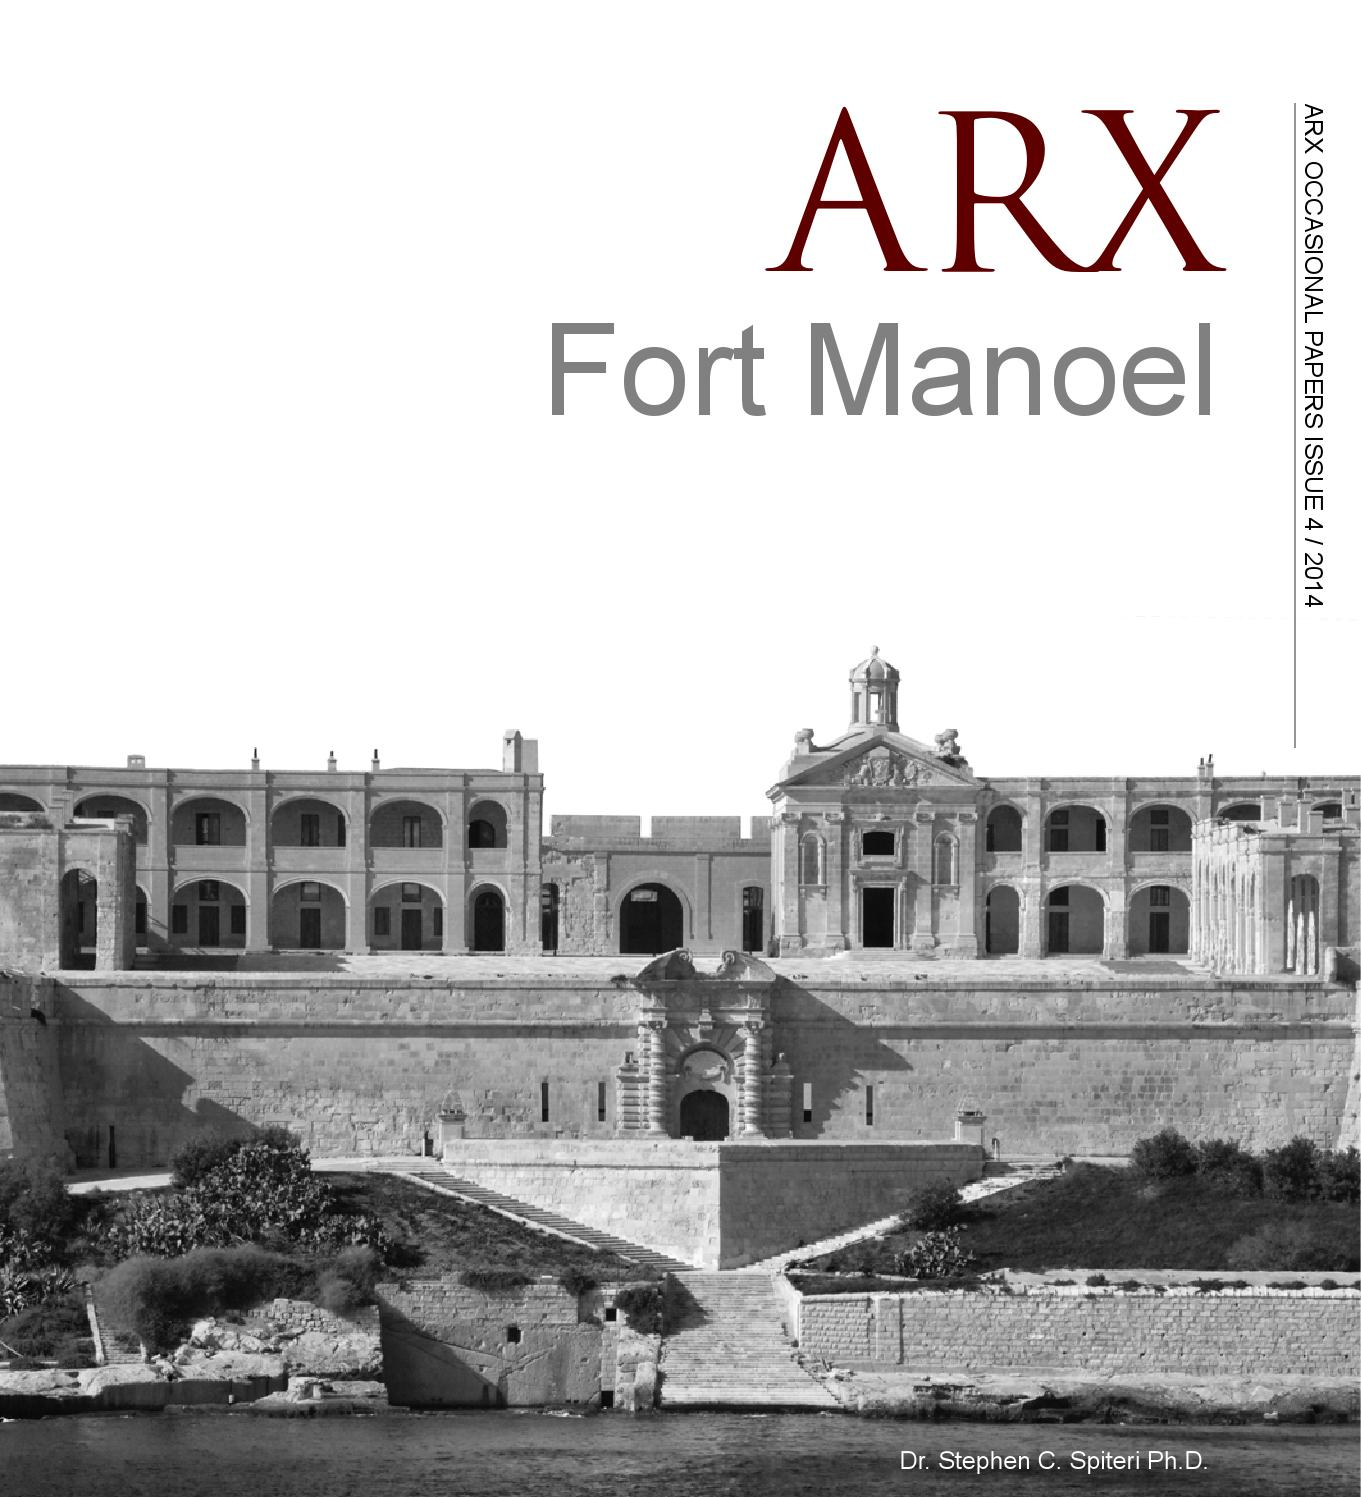 ARX, Fort Manoel, Occasional Papers, 4, 2014 by Arkitettura - issuu